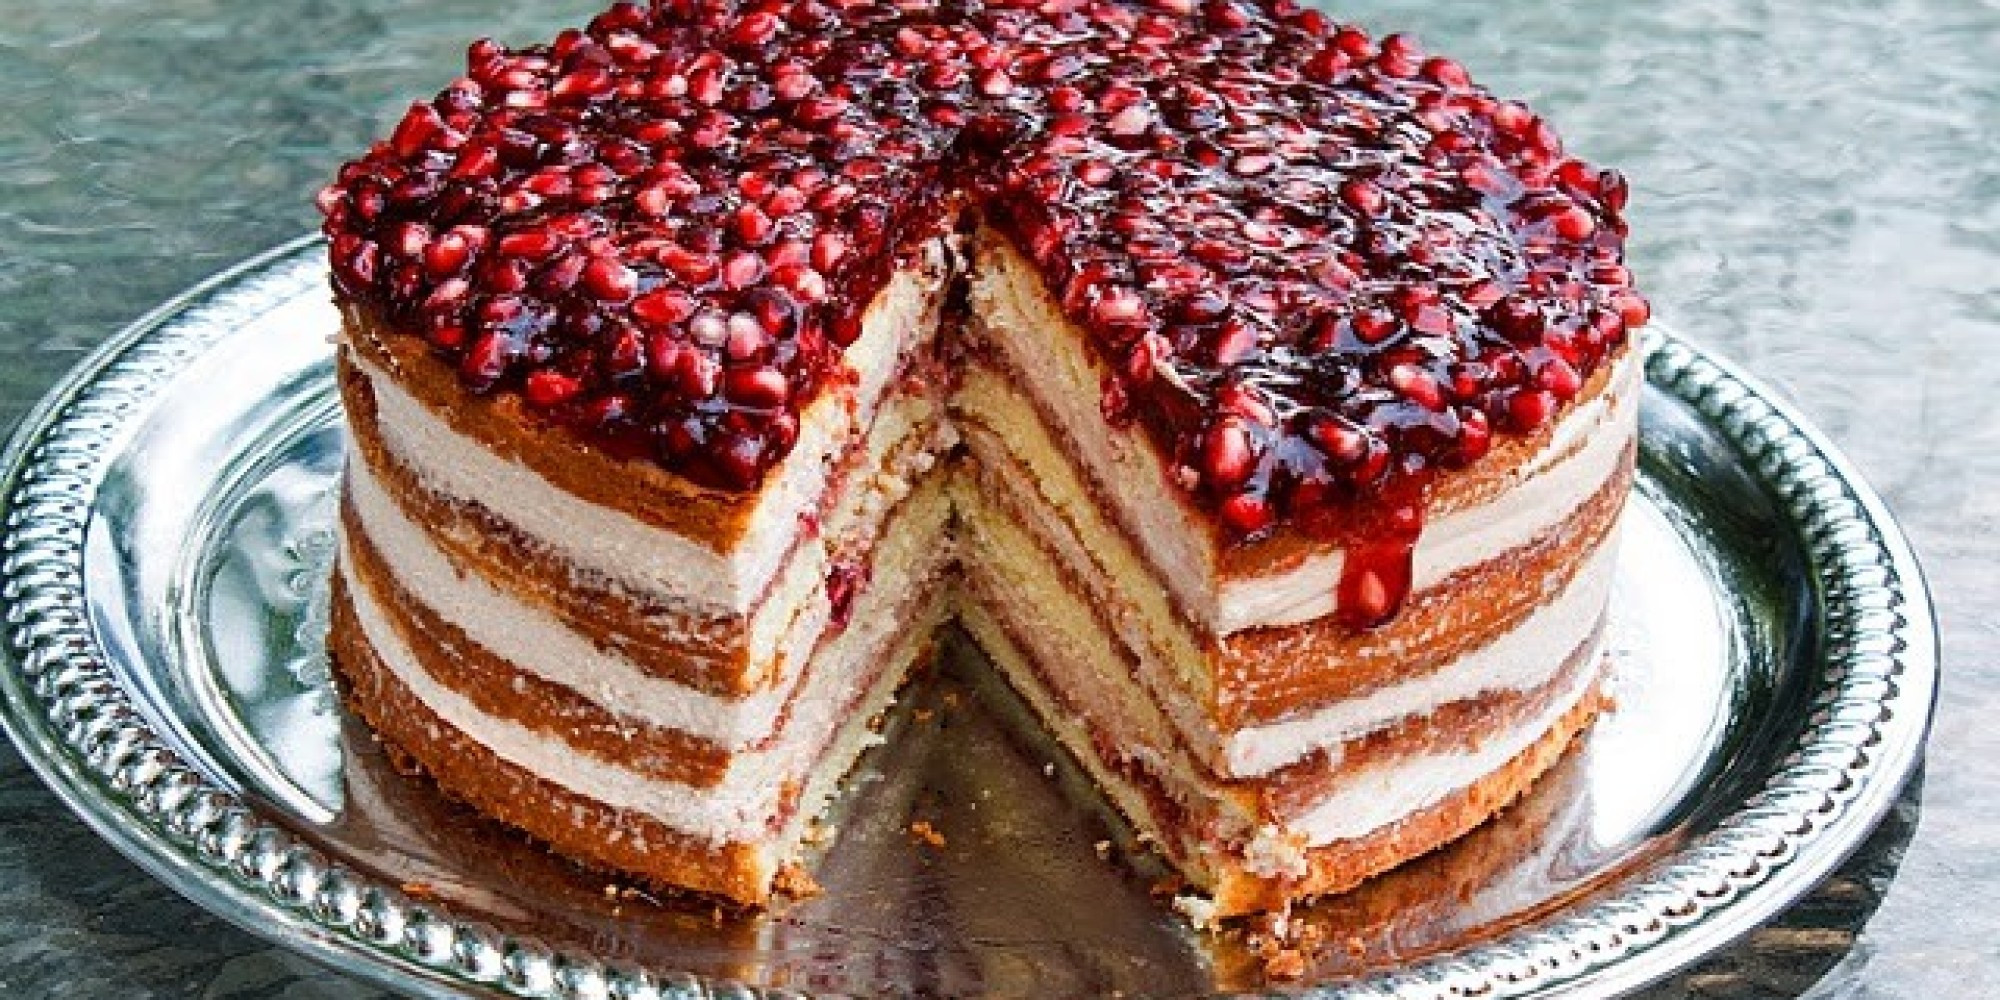 Pictures Of Christmas Desserts  The Most Stunning Christmas Dessert Recipes Ever